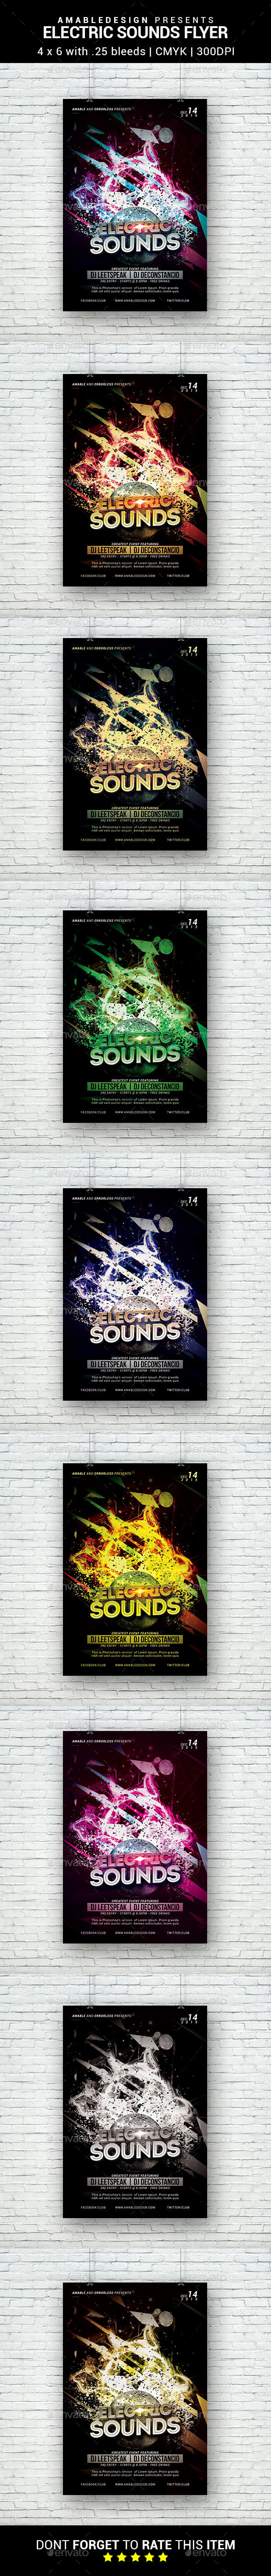 Electric Sounds Flyer - Clubs & Parties Events